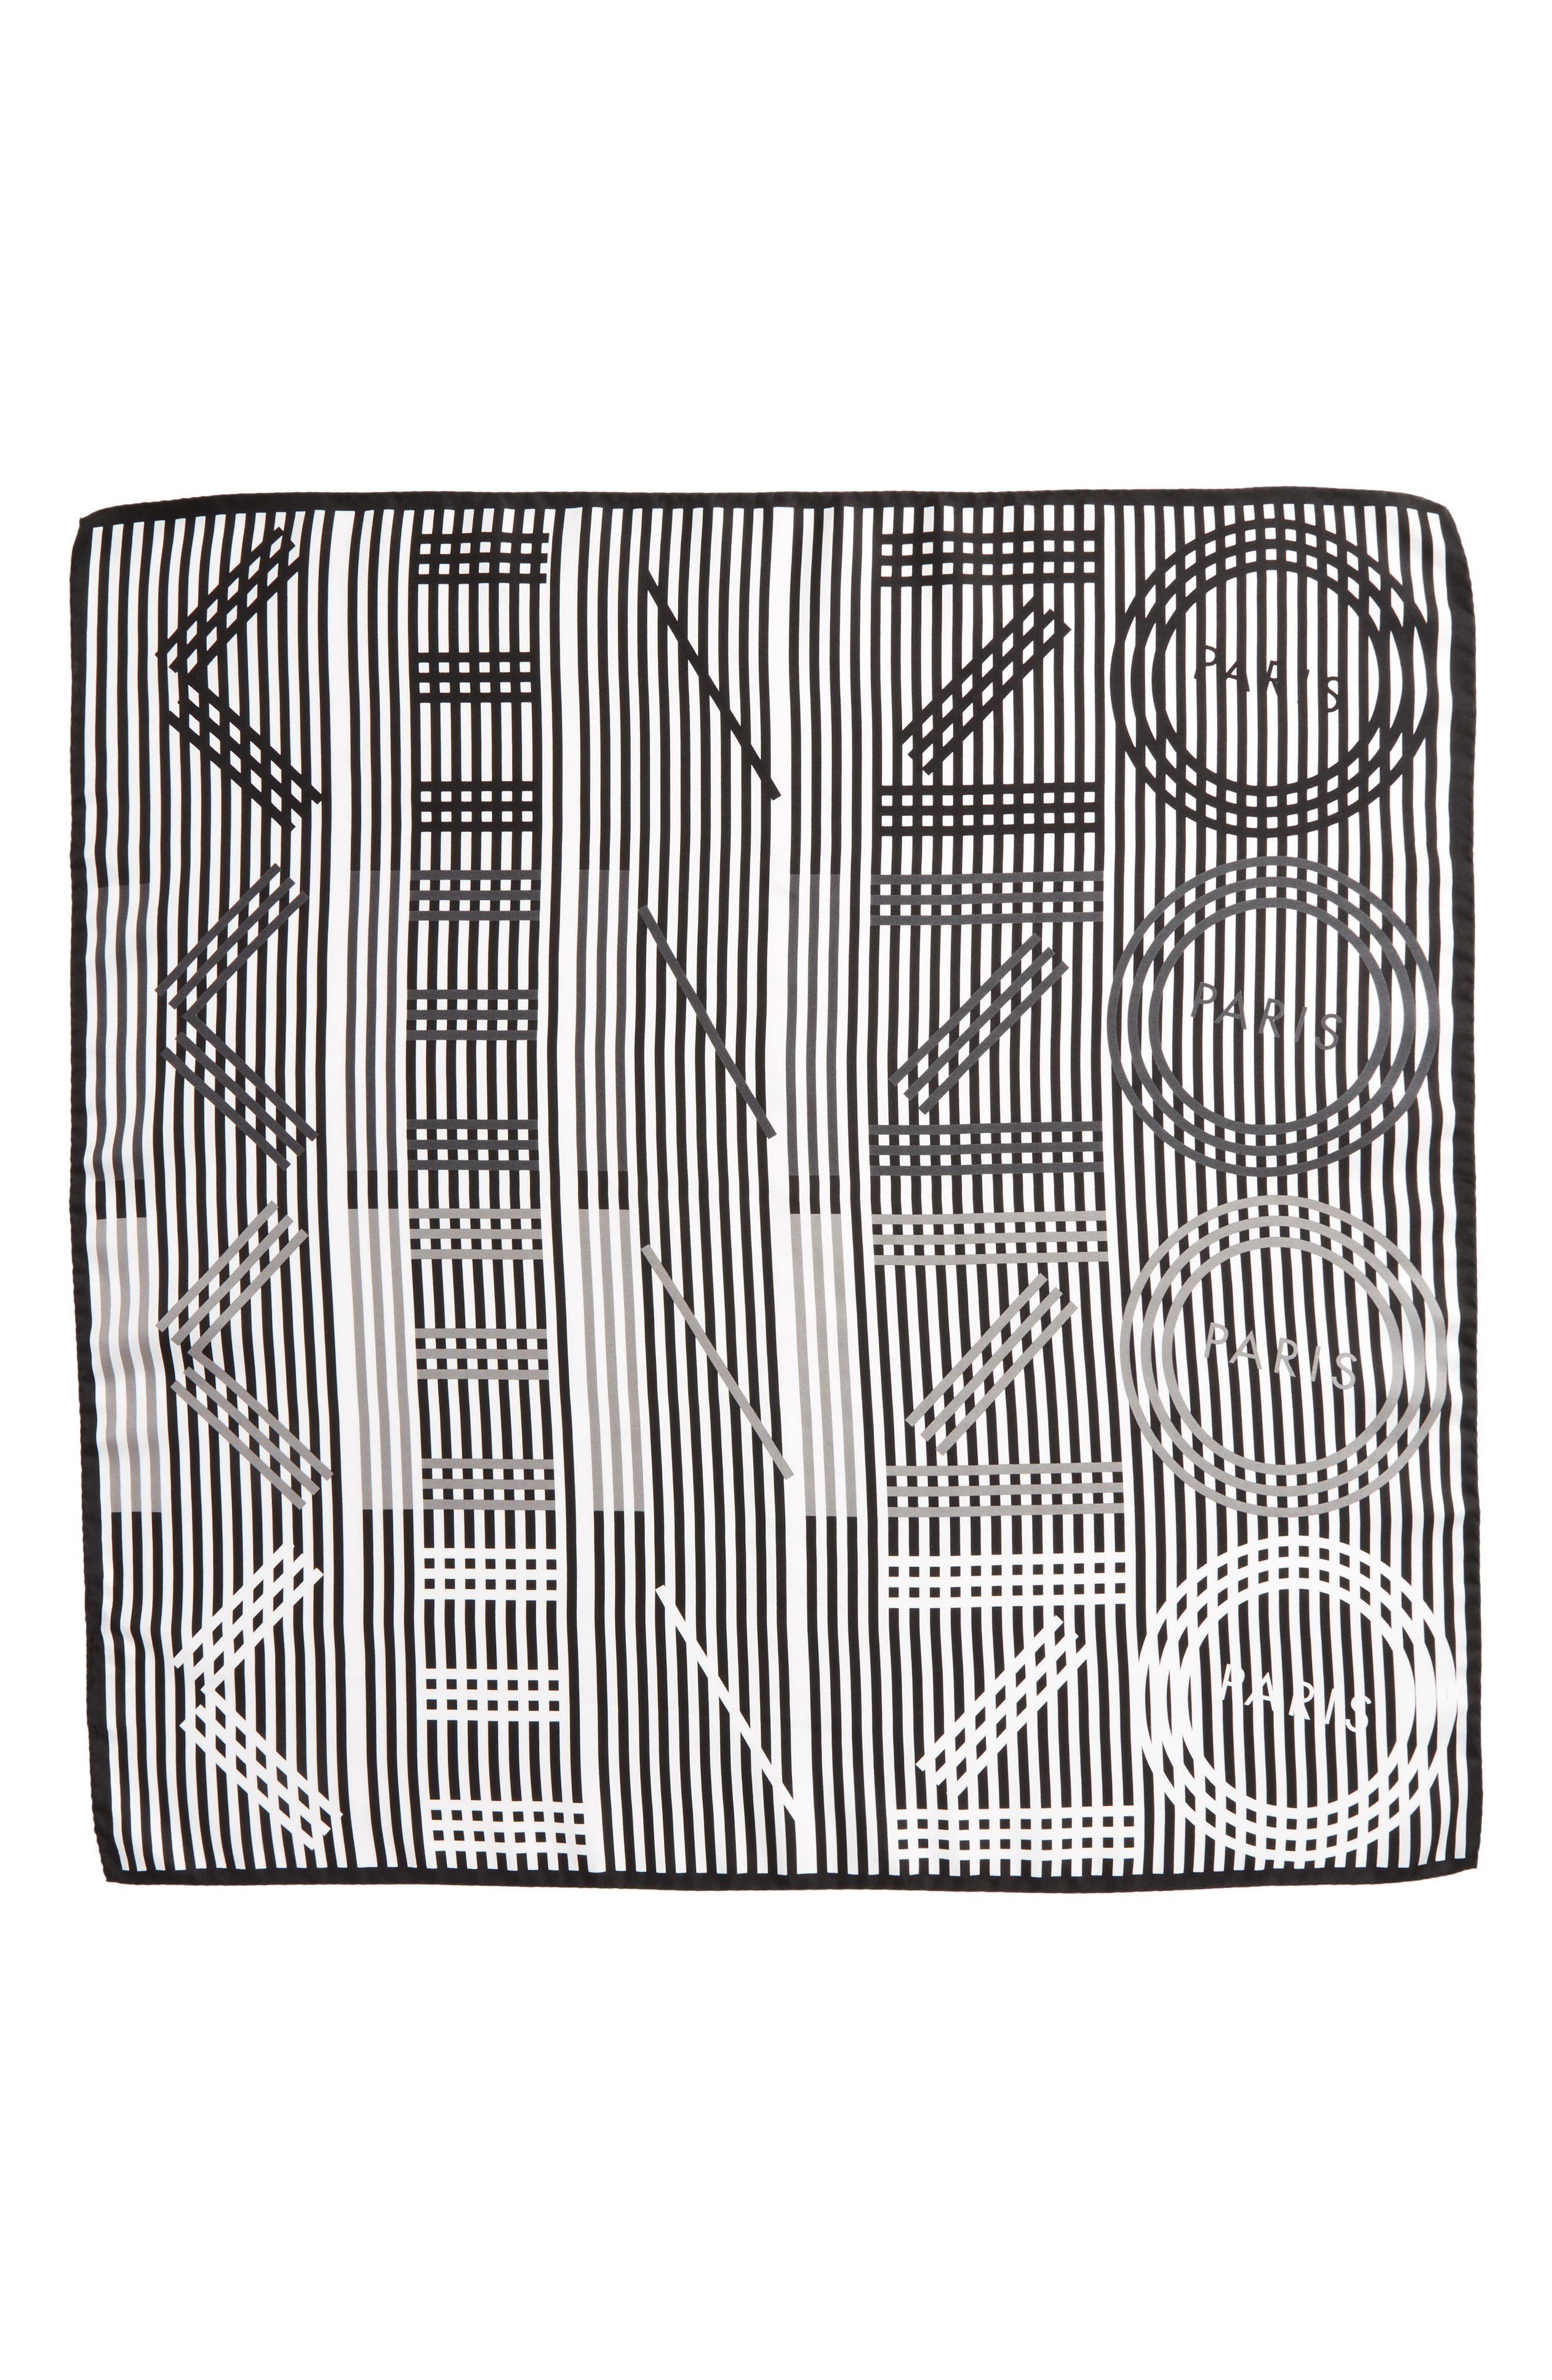 Alternate Image 1 Selected - KENZO Graphic Square Silk Scarf